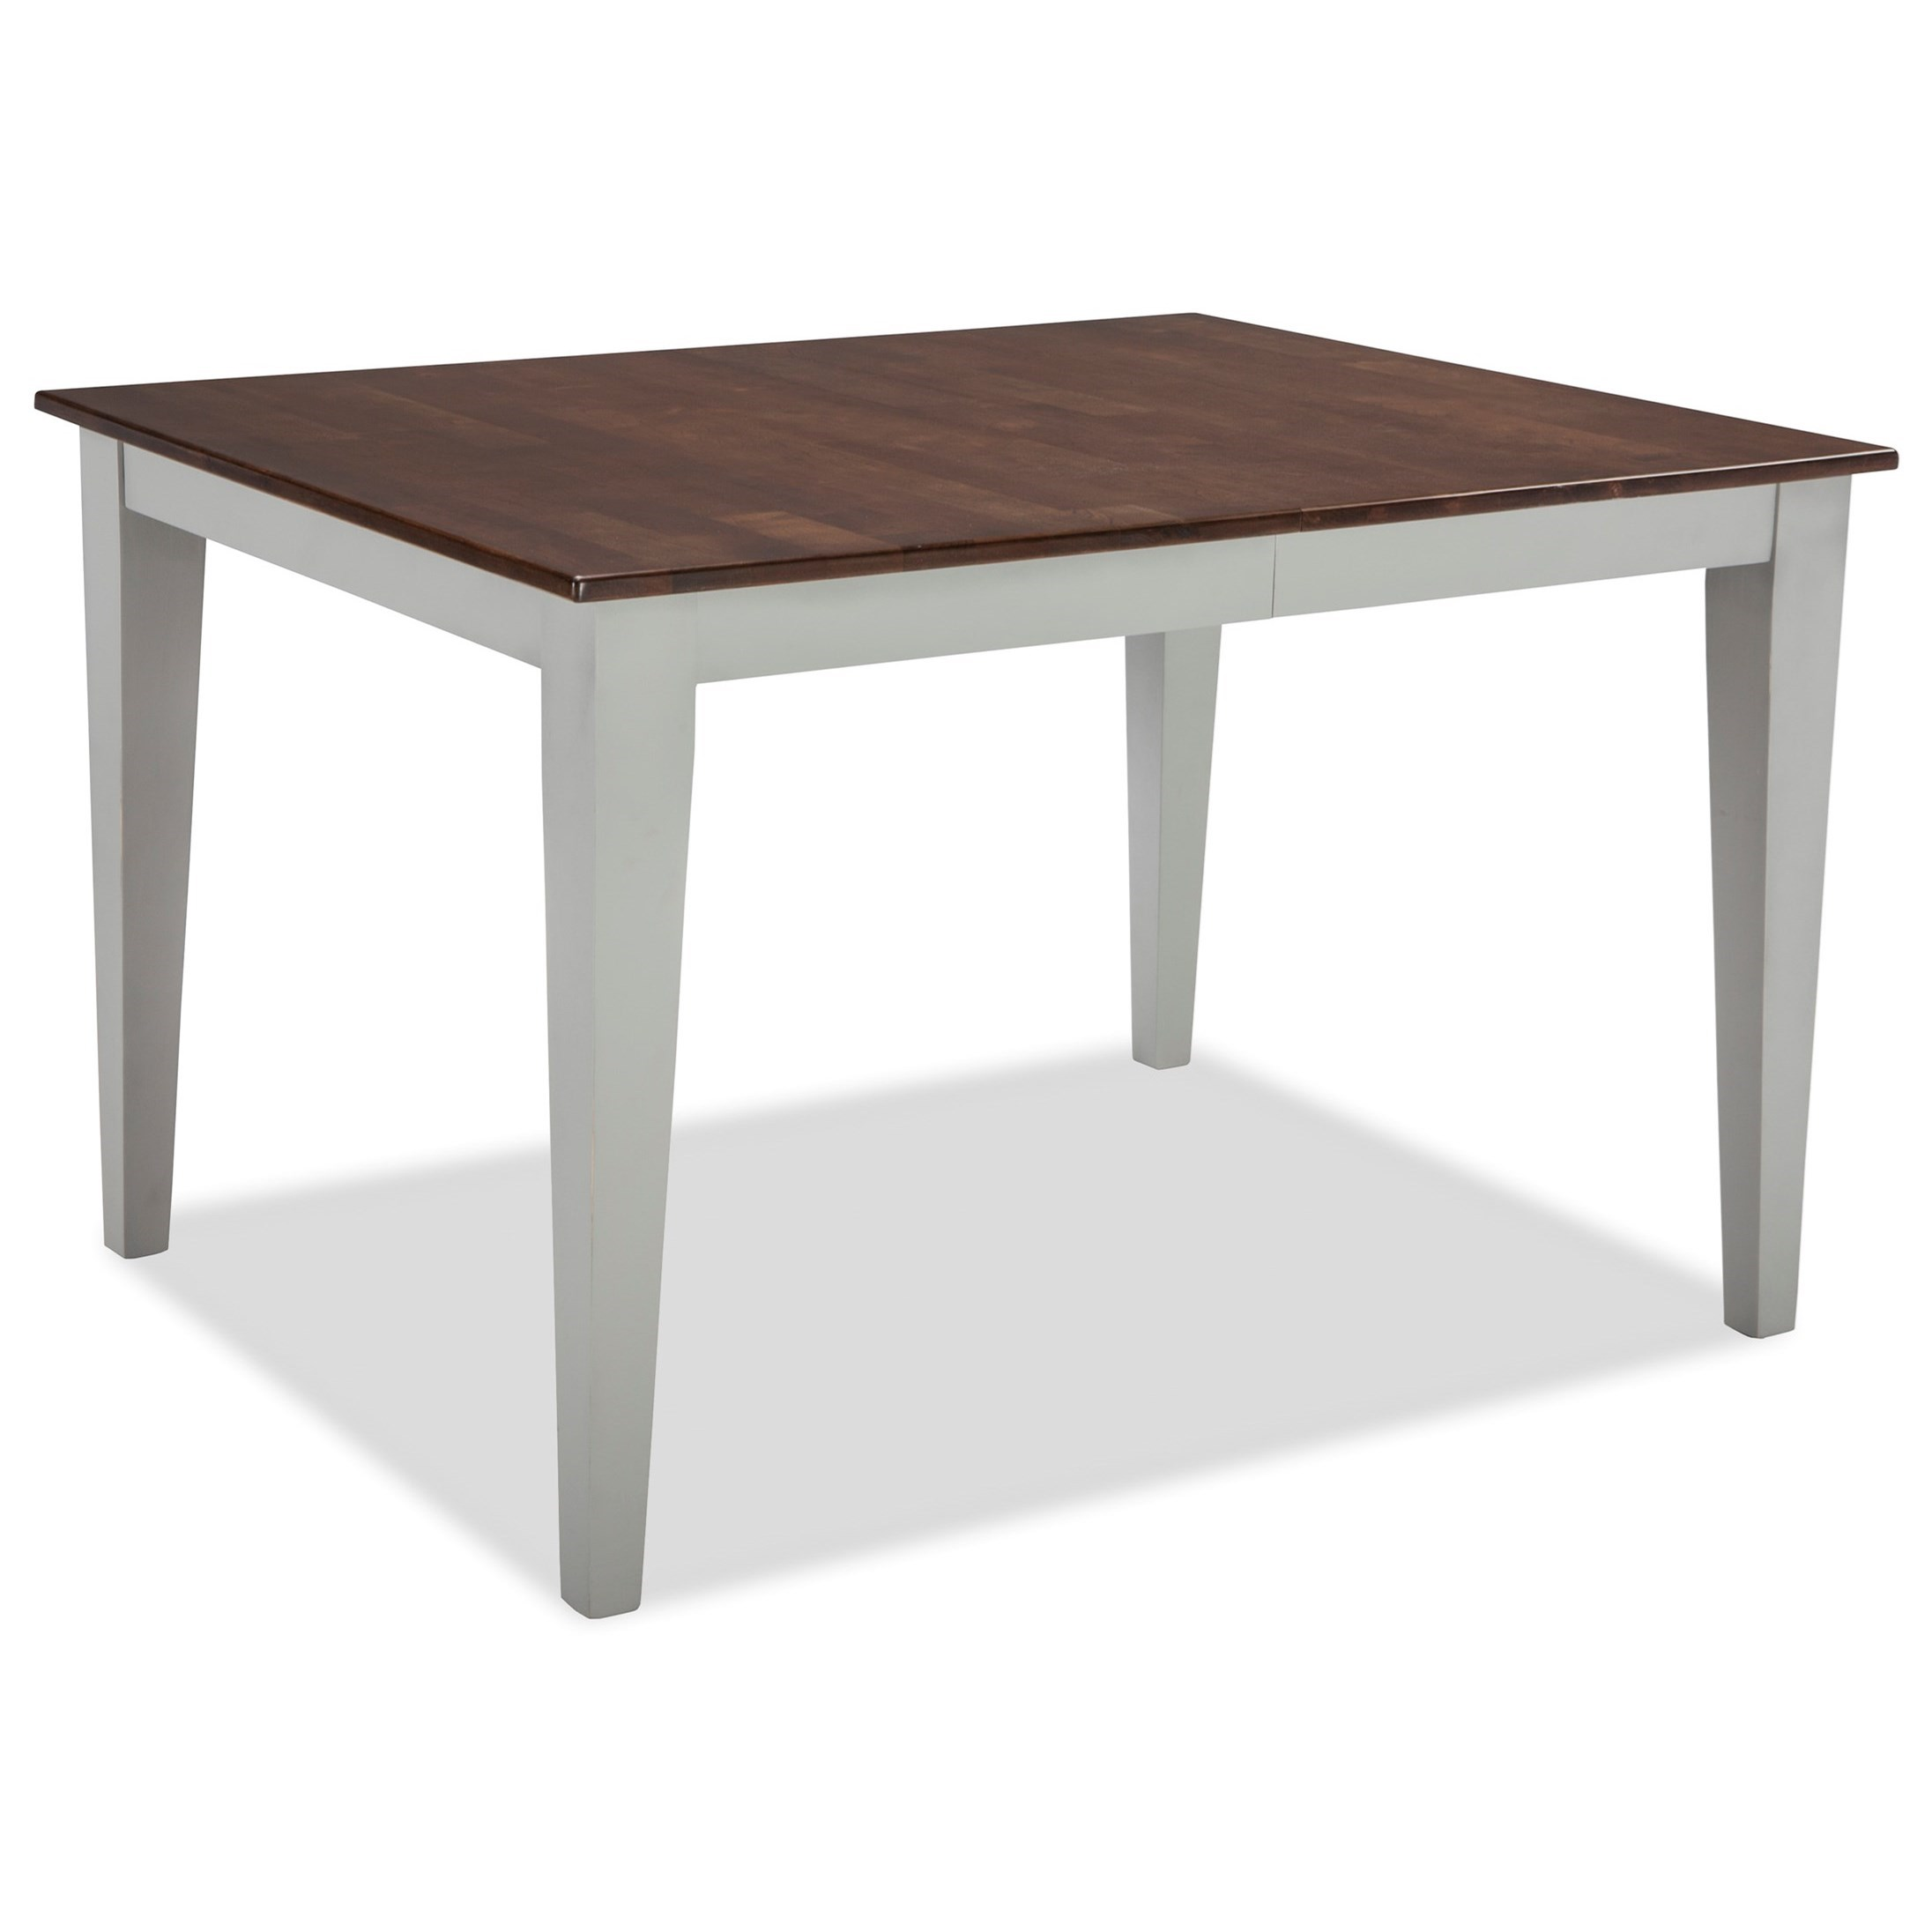 Intercon small space ss ta 3866 cyg c two tone rectangular for Small dining room table with leaf